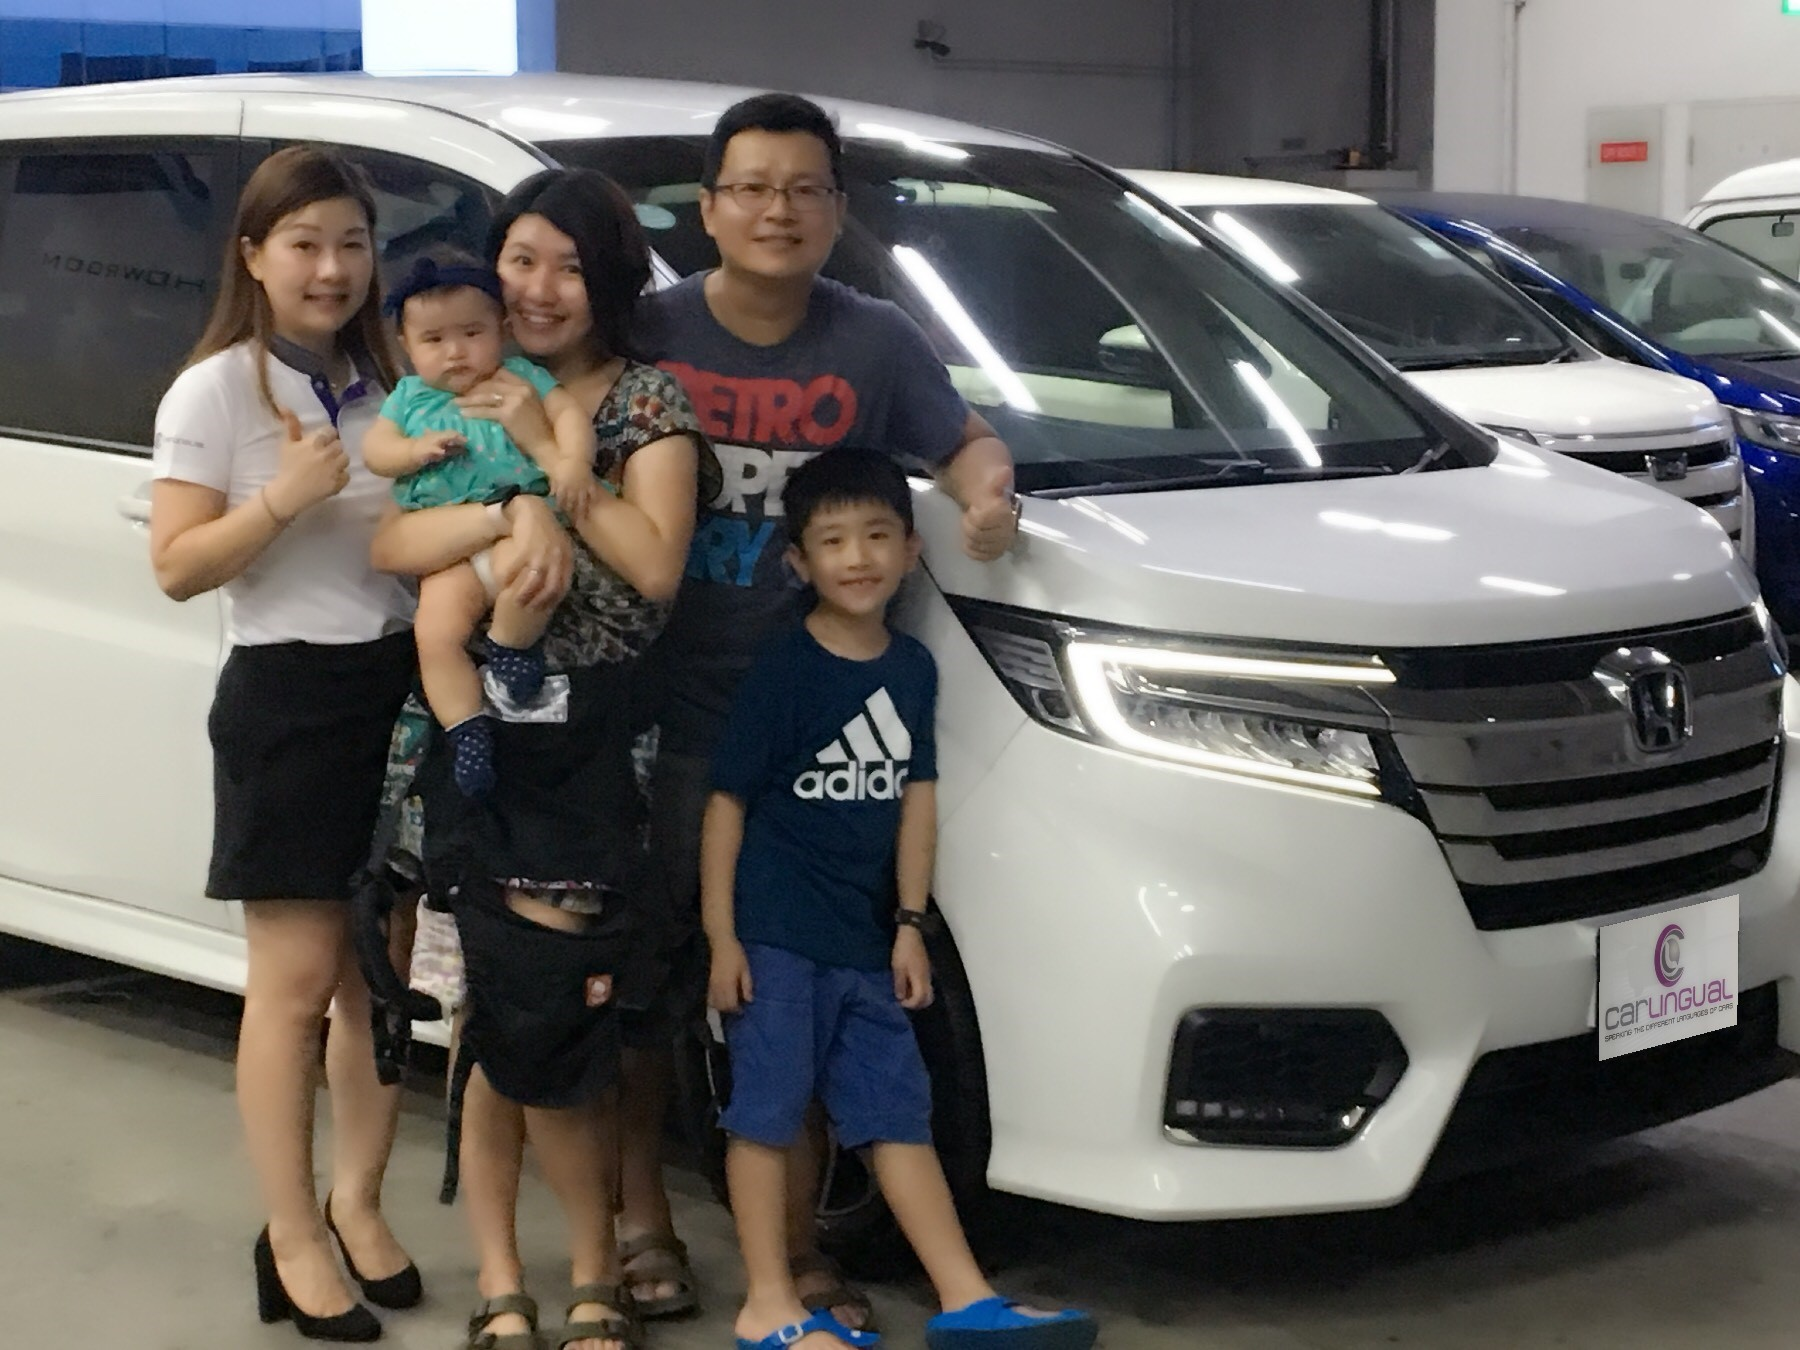 Carlingual Satisfied White Honda Car Buyer